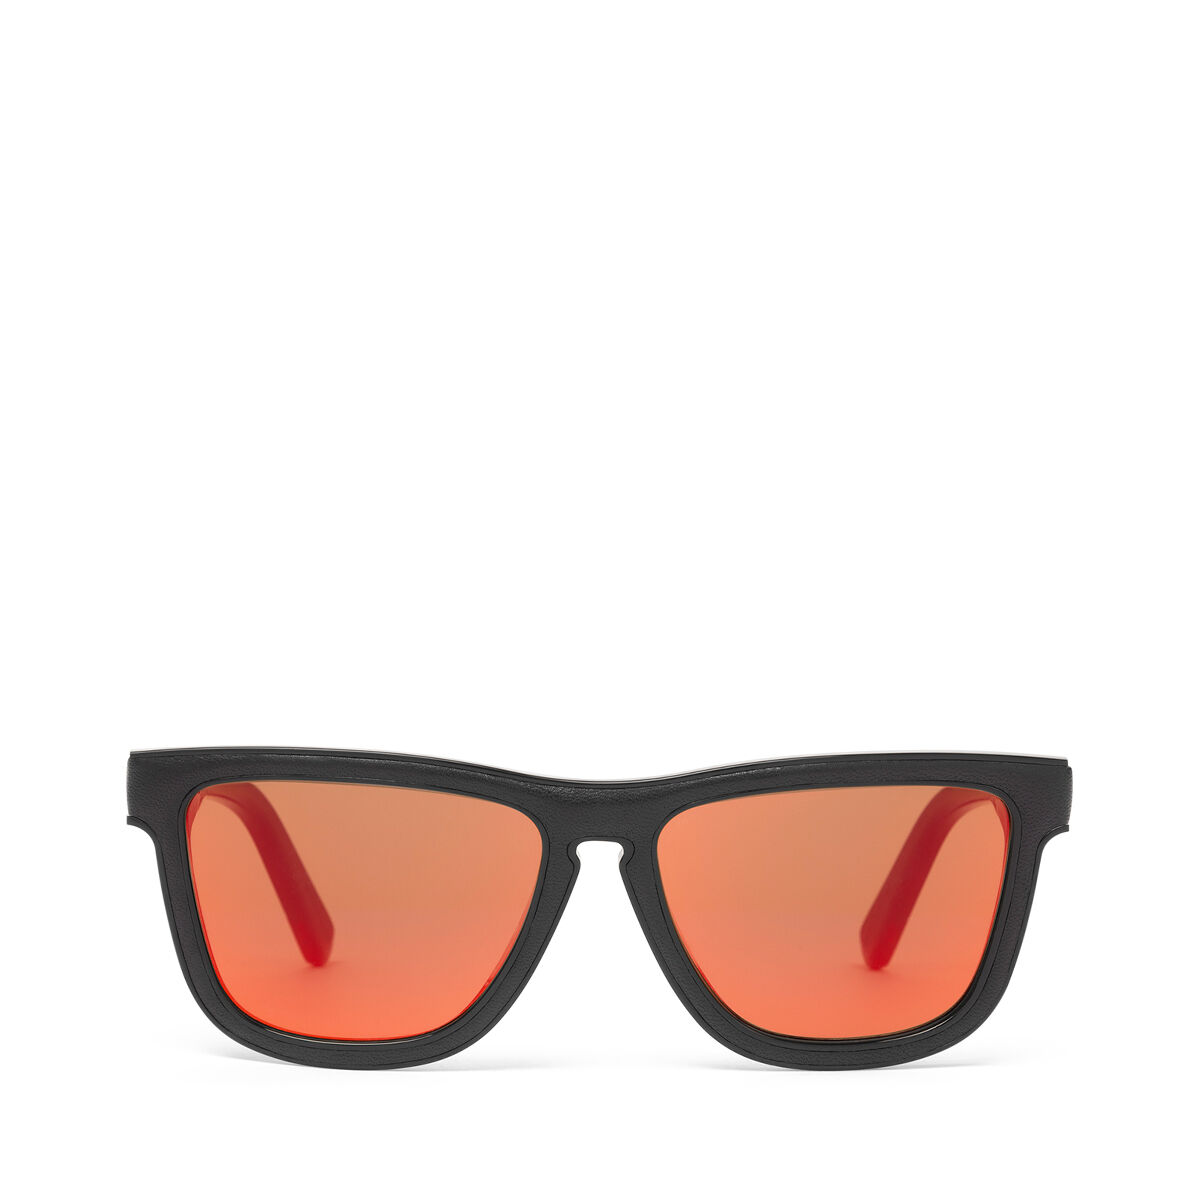 LOEWE Square Padded Sunglasses Black/Mirror Red all